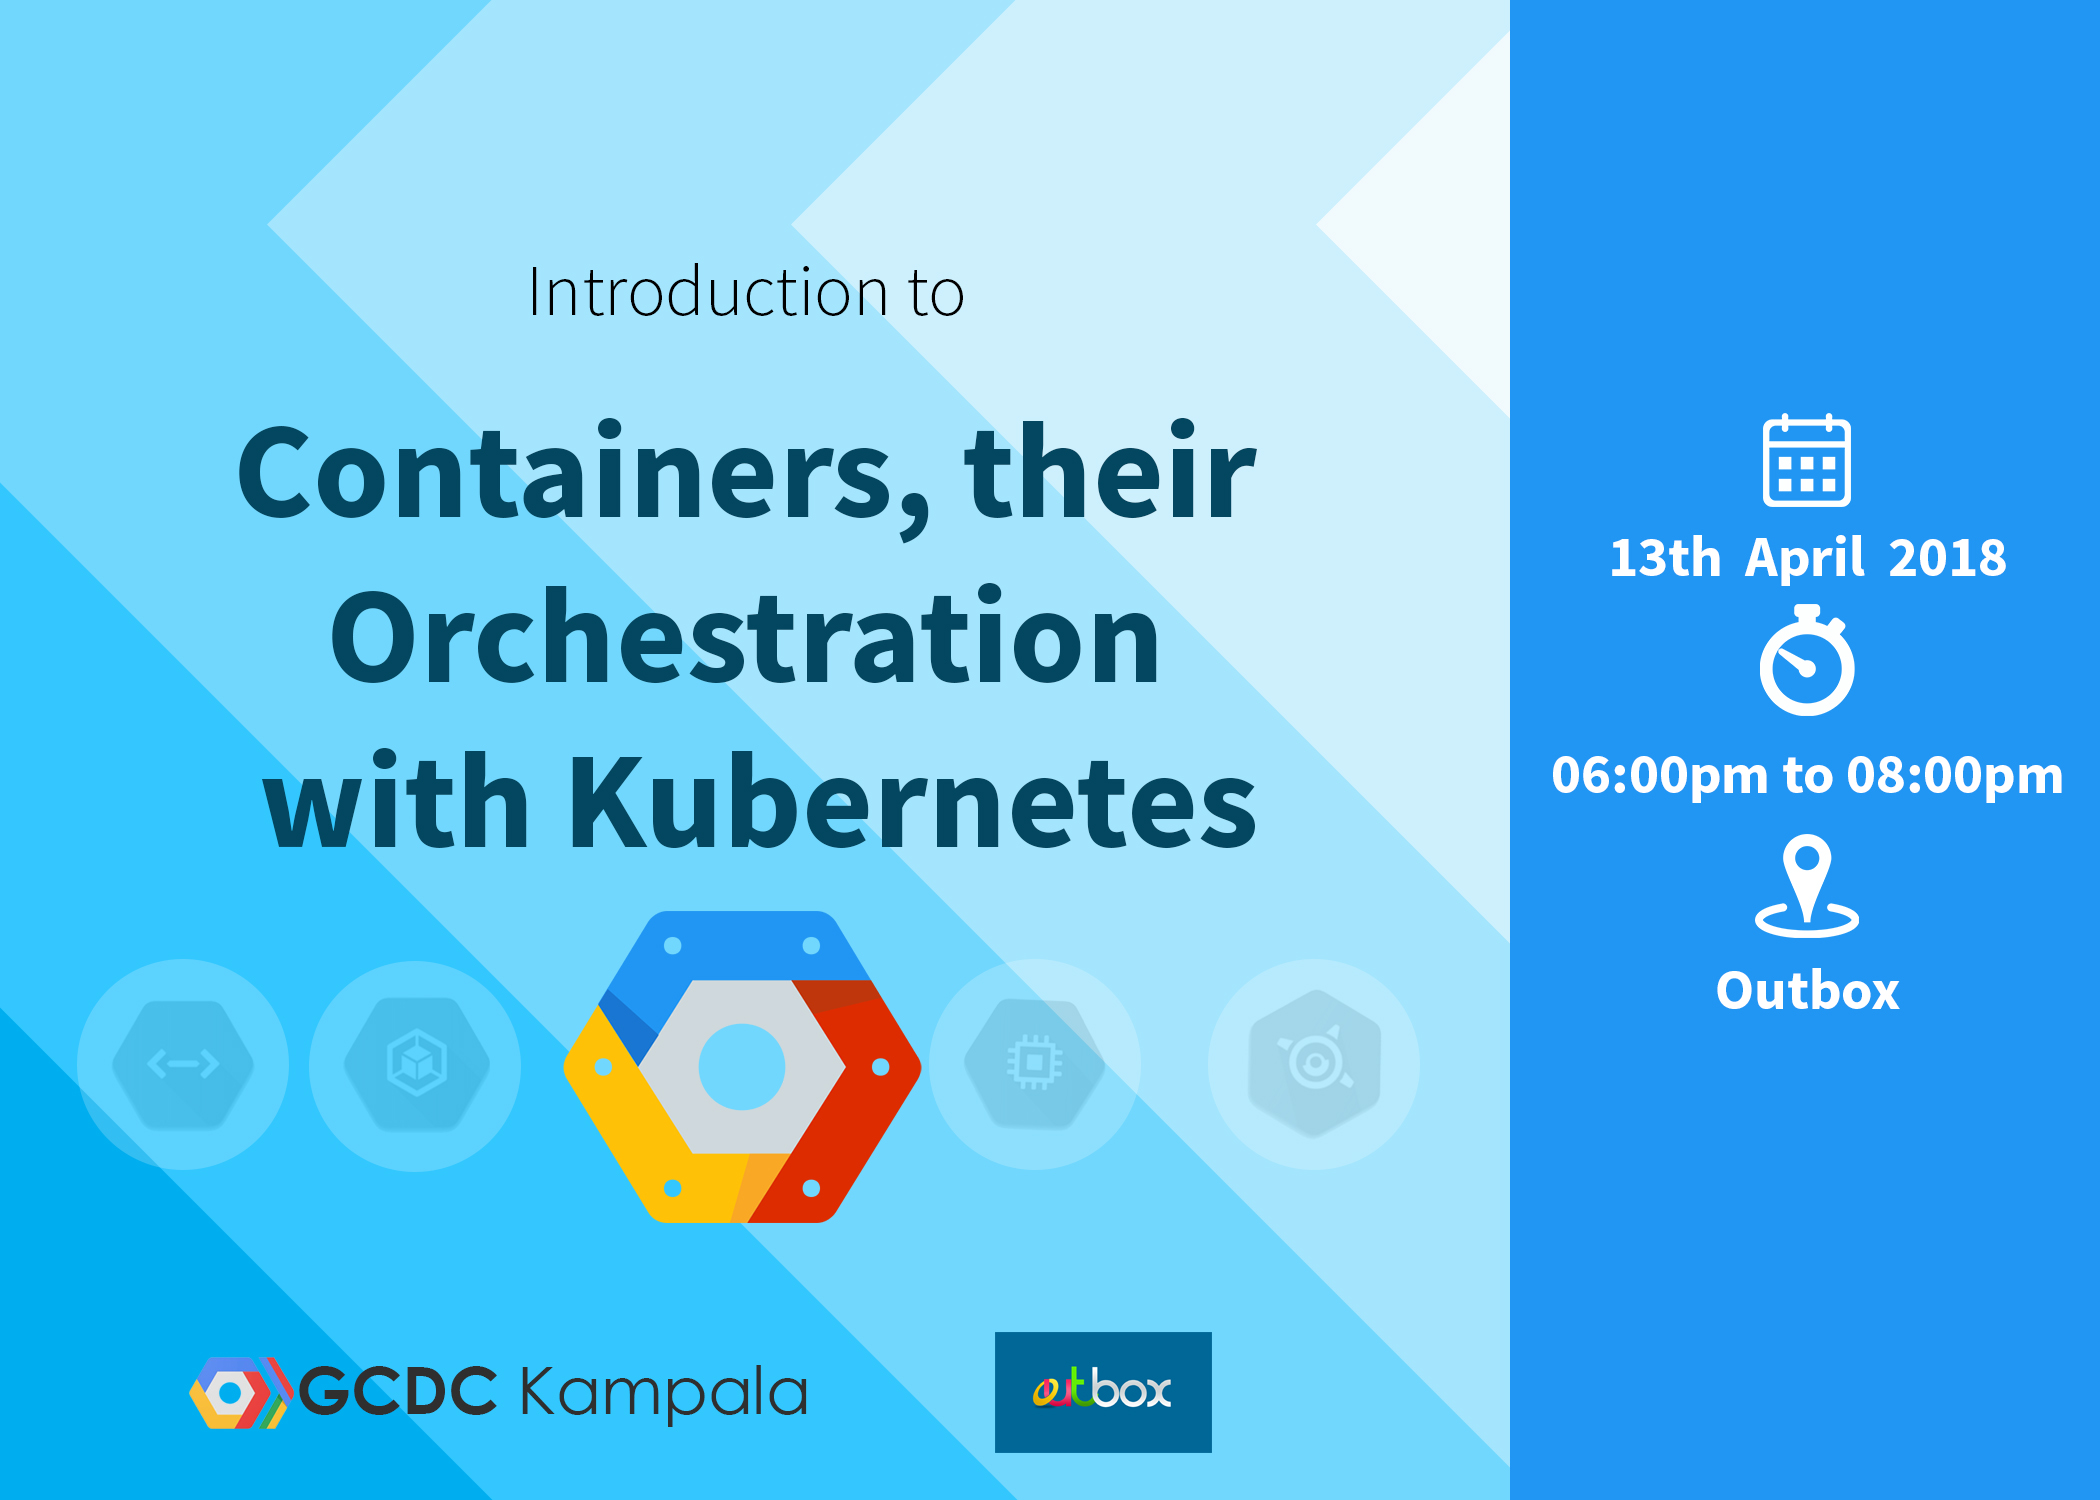 An Introduction to Containers, their Orchestration with Kubernetes